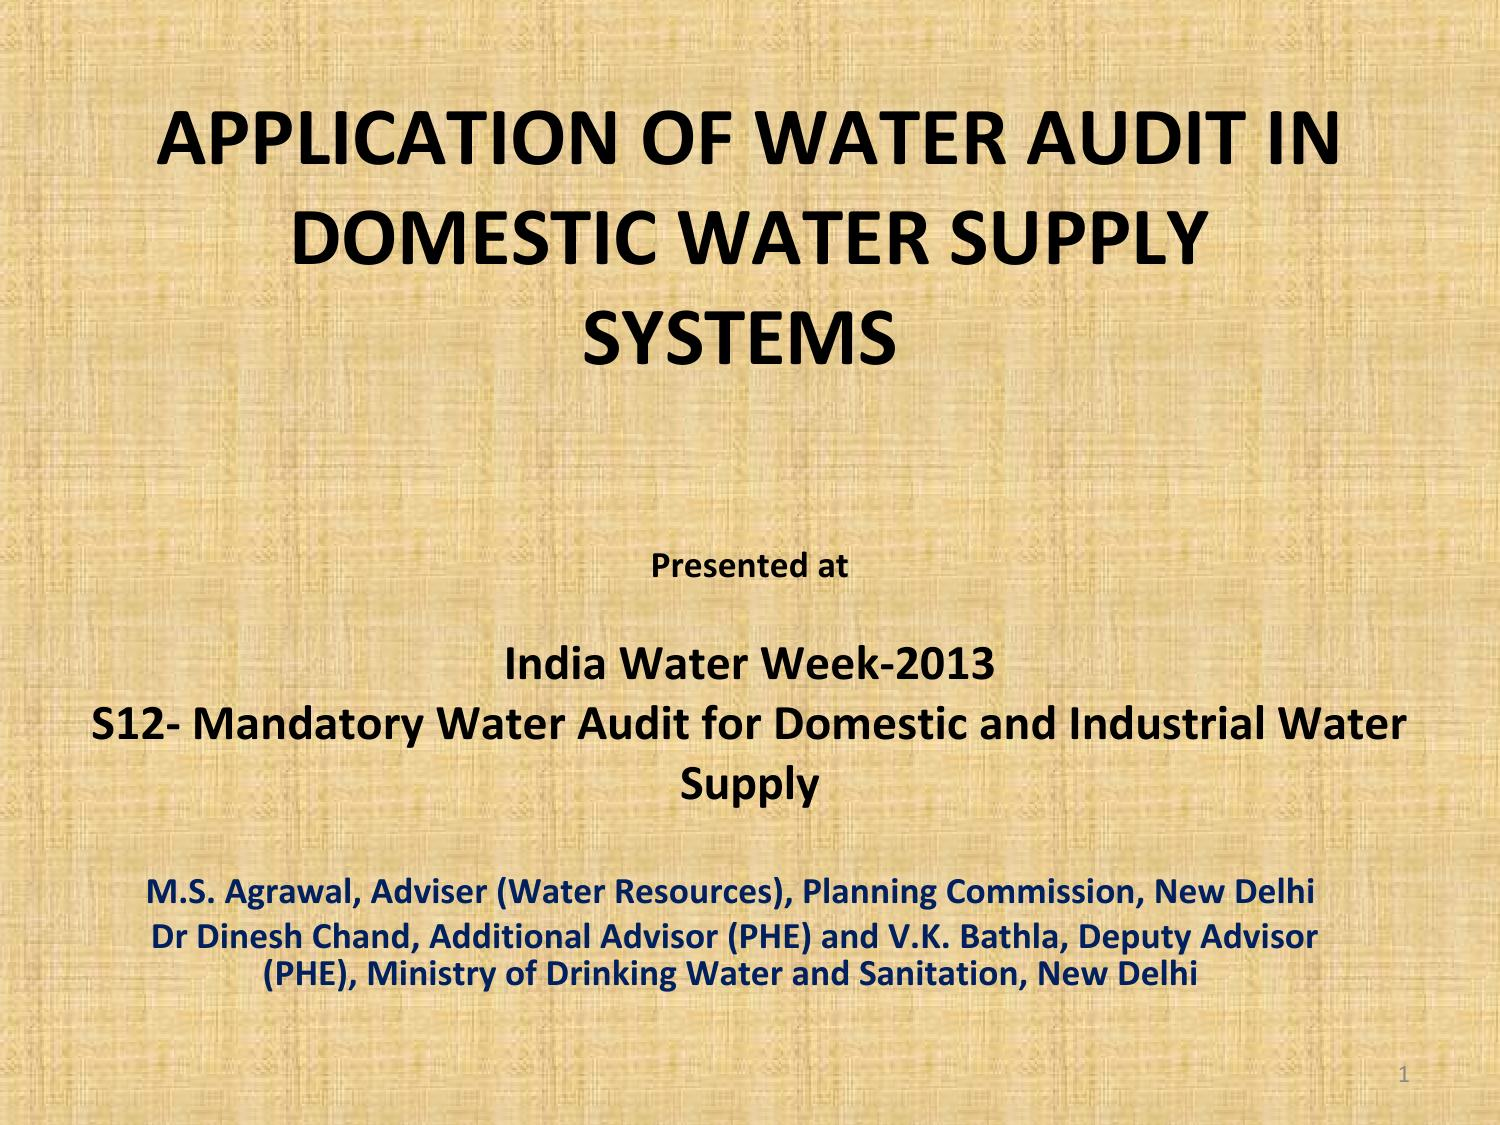 APPLICATION OF WATER AUDIT IN DOMESTIC WATER SUPPLY SYSTEMS